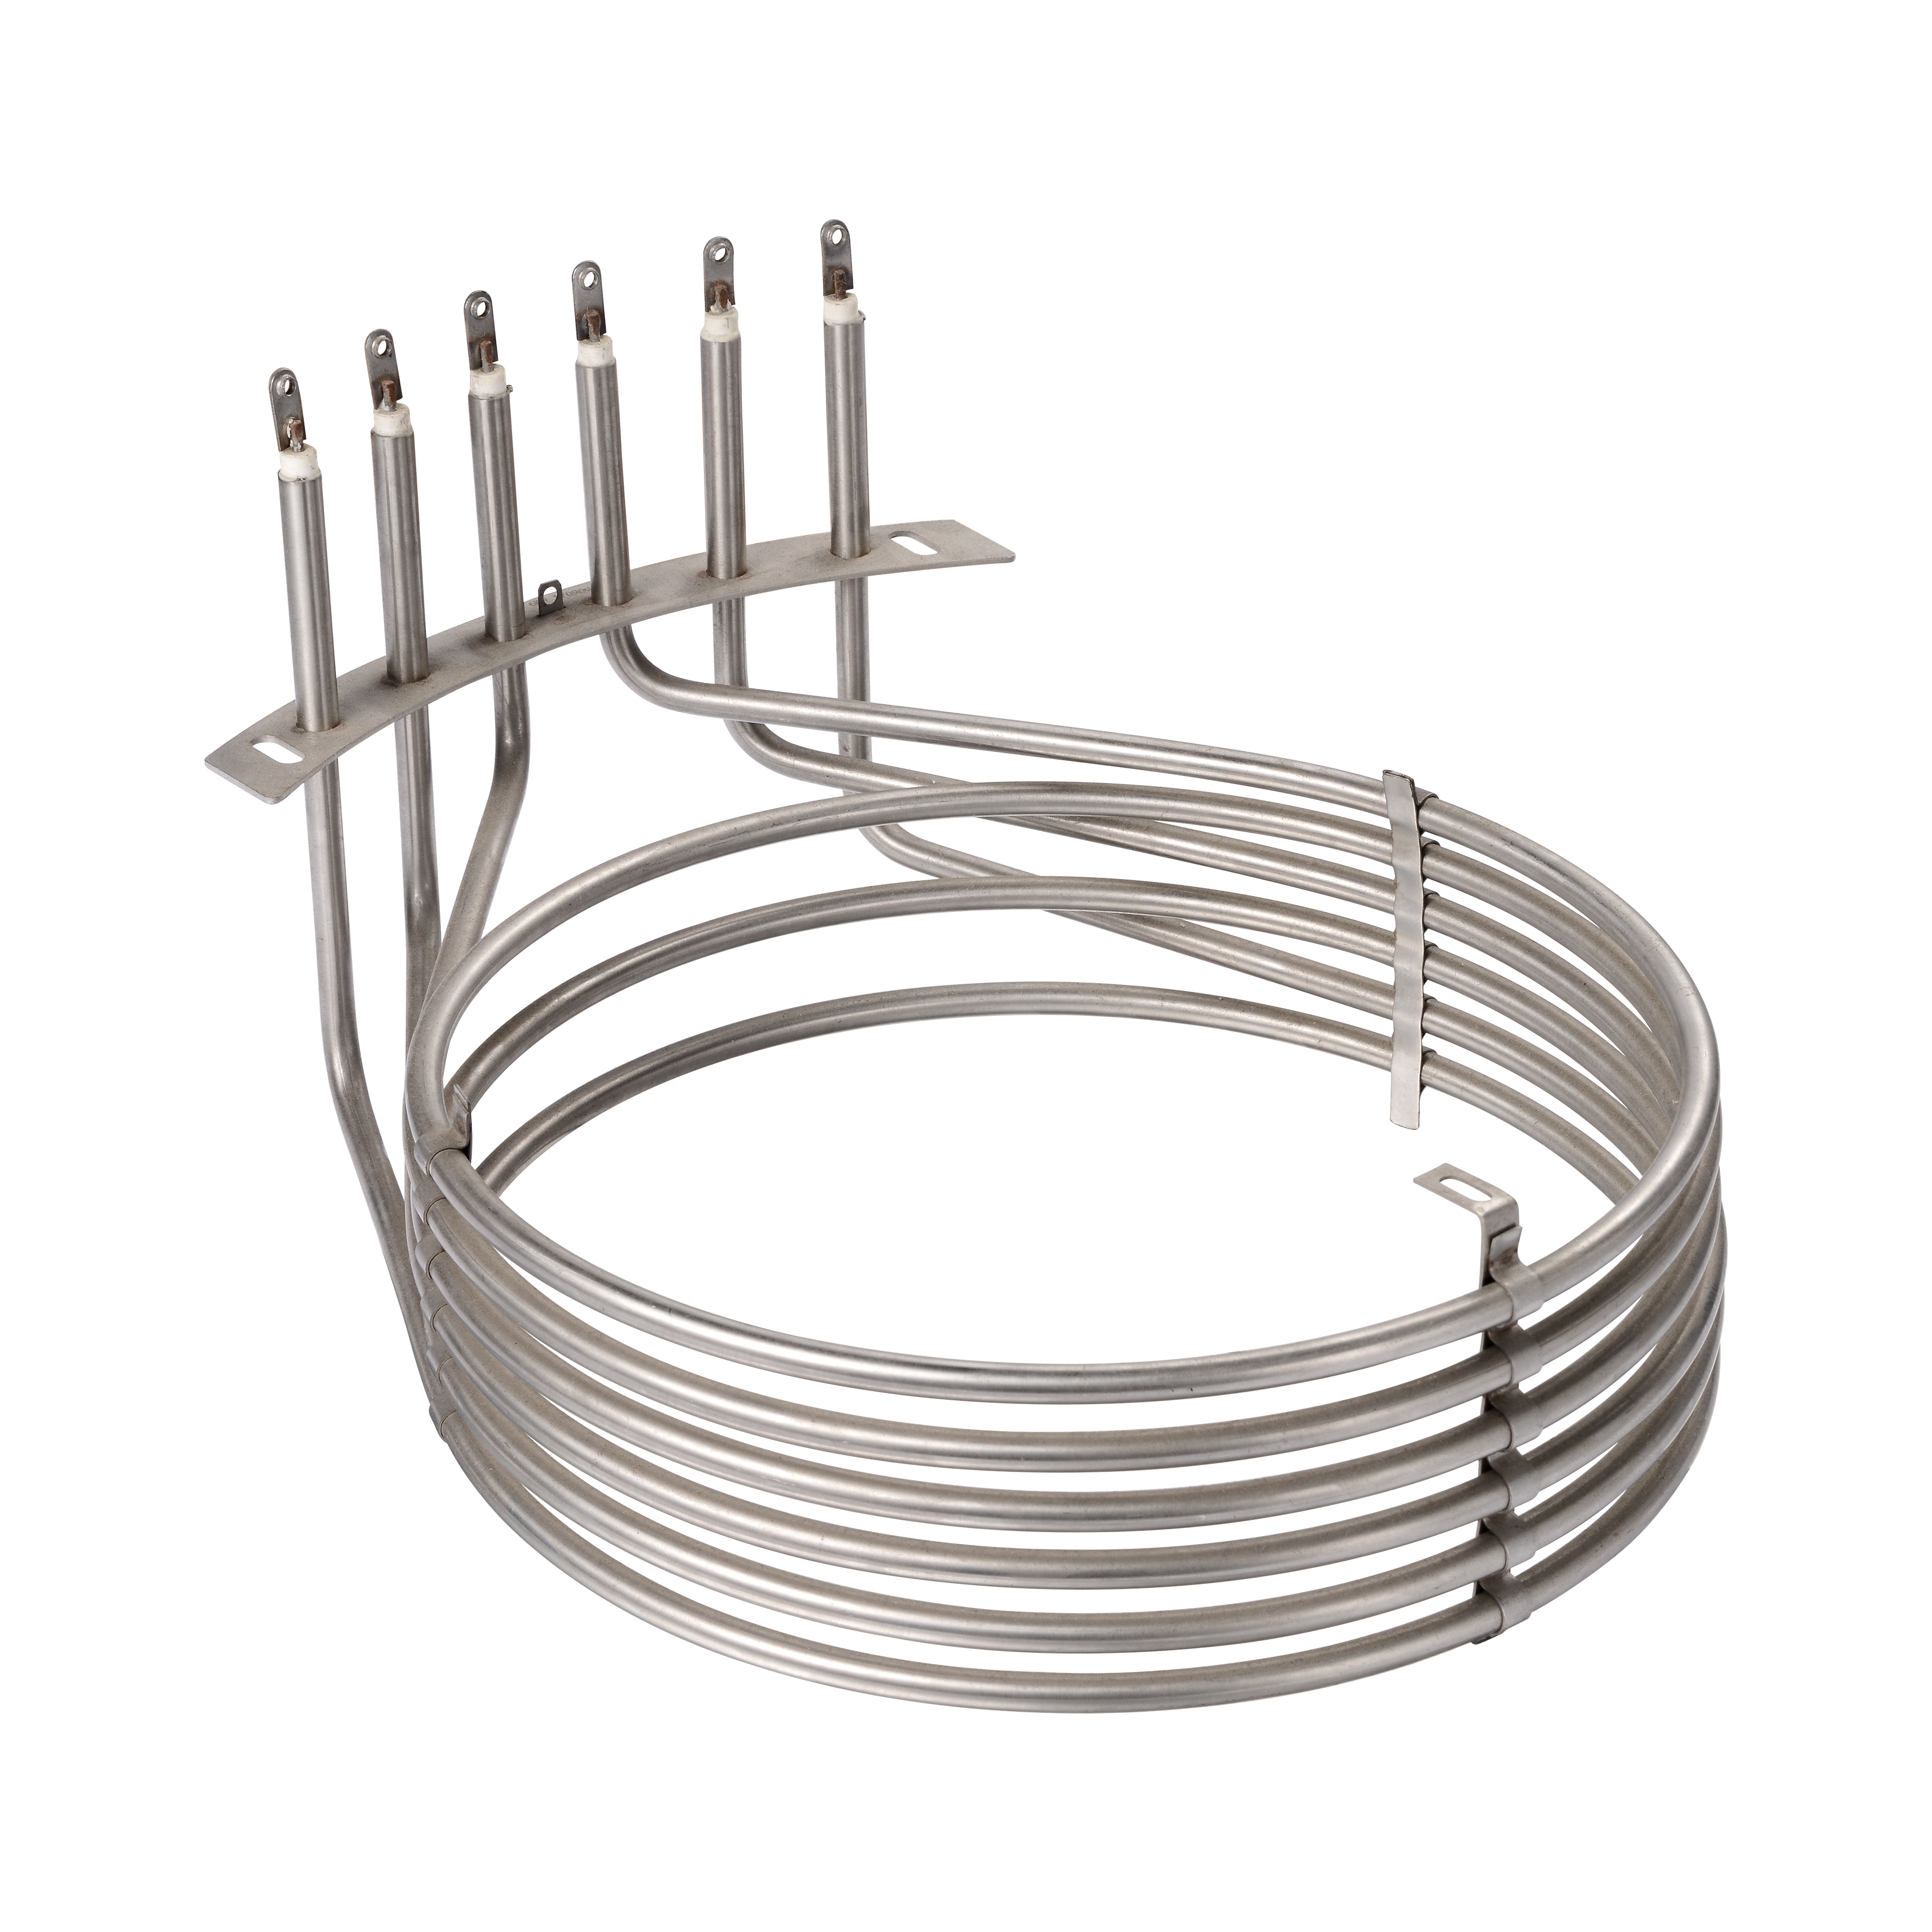 China Professional Manufacture Custom Made Ovens Heating Element